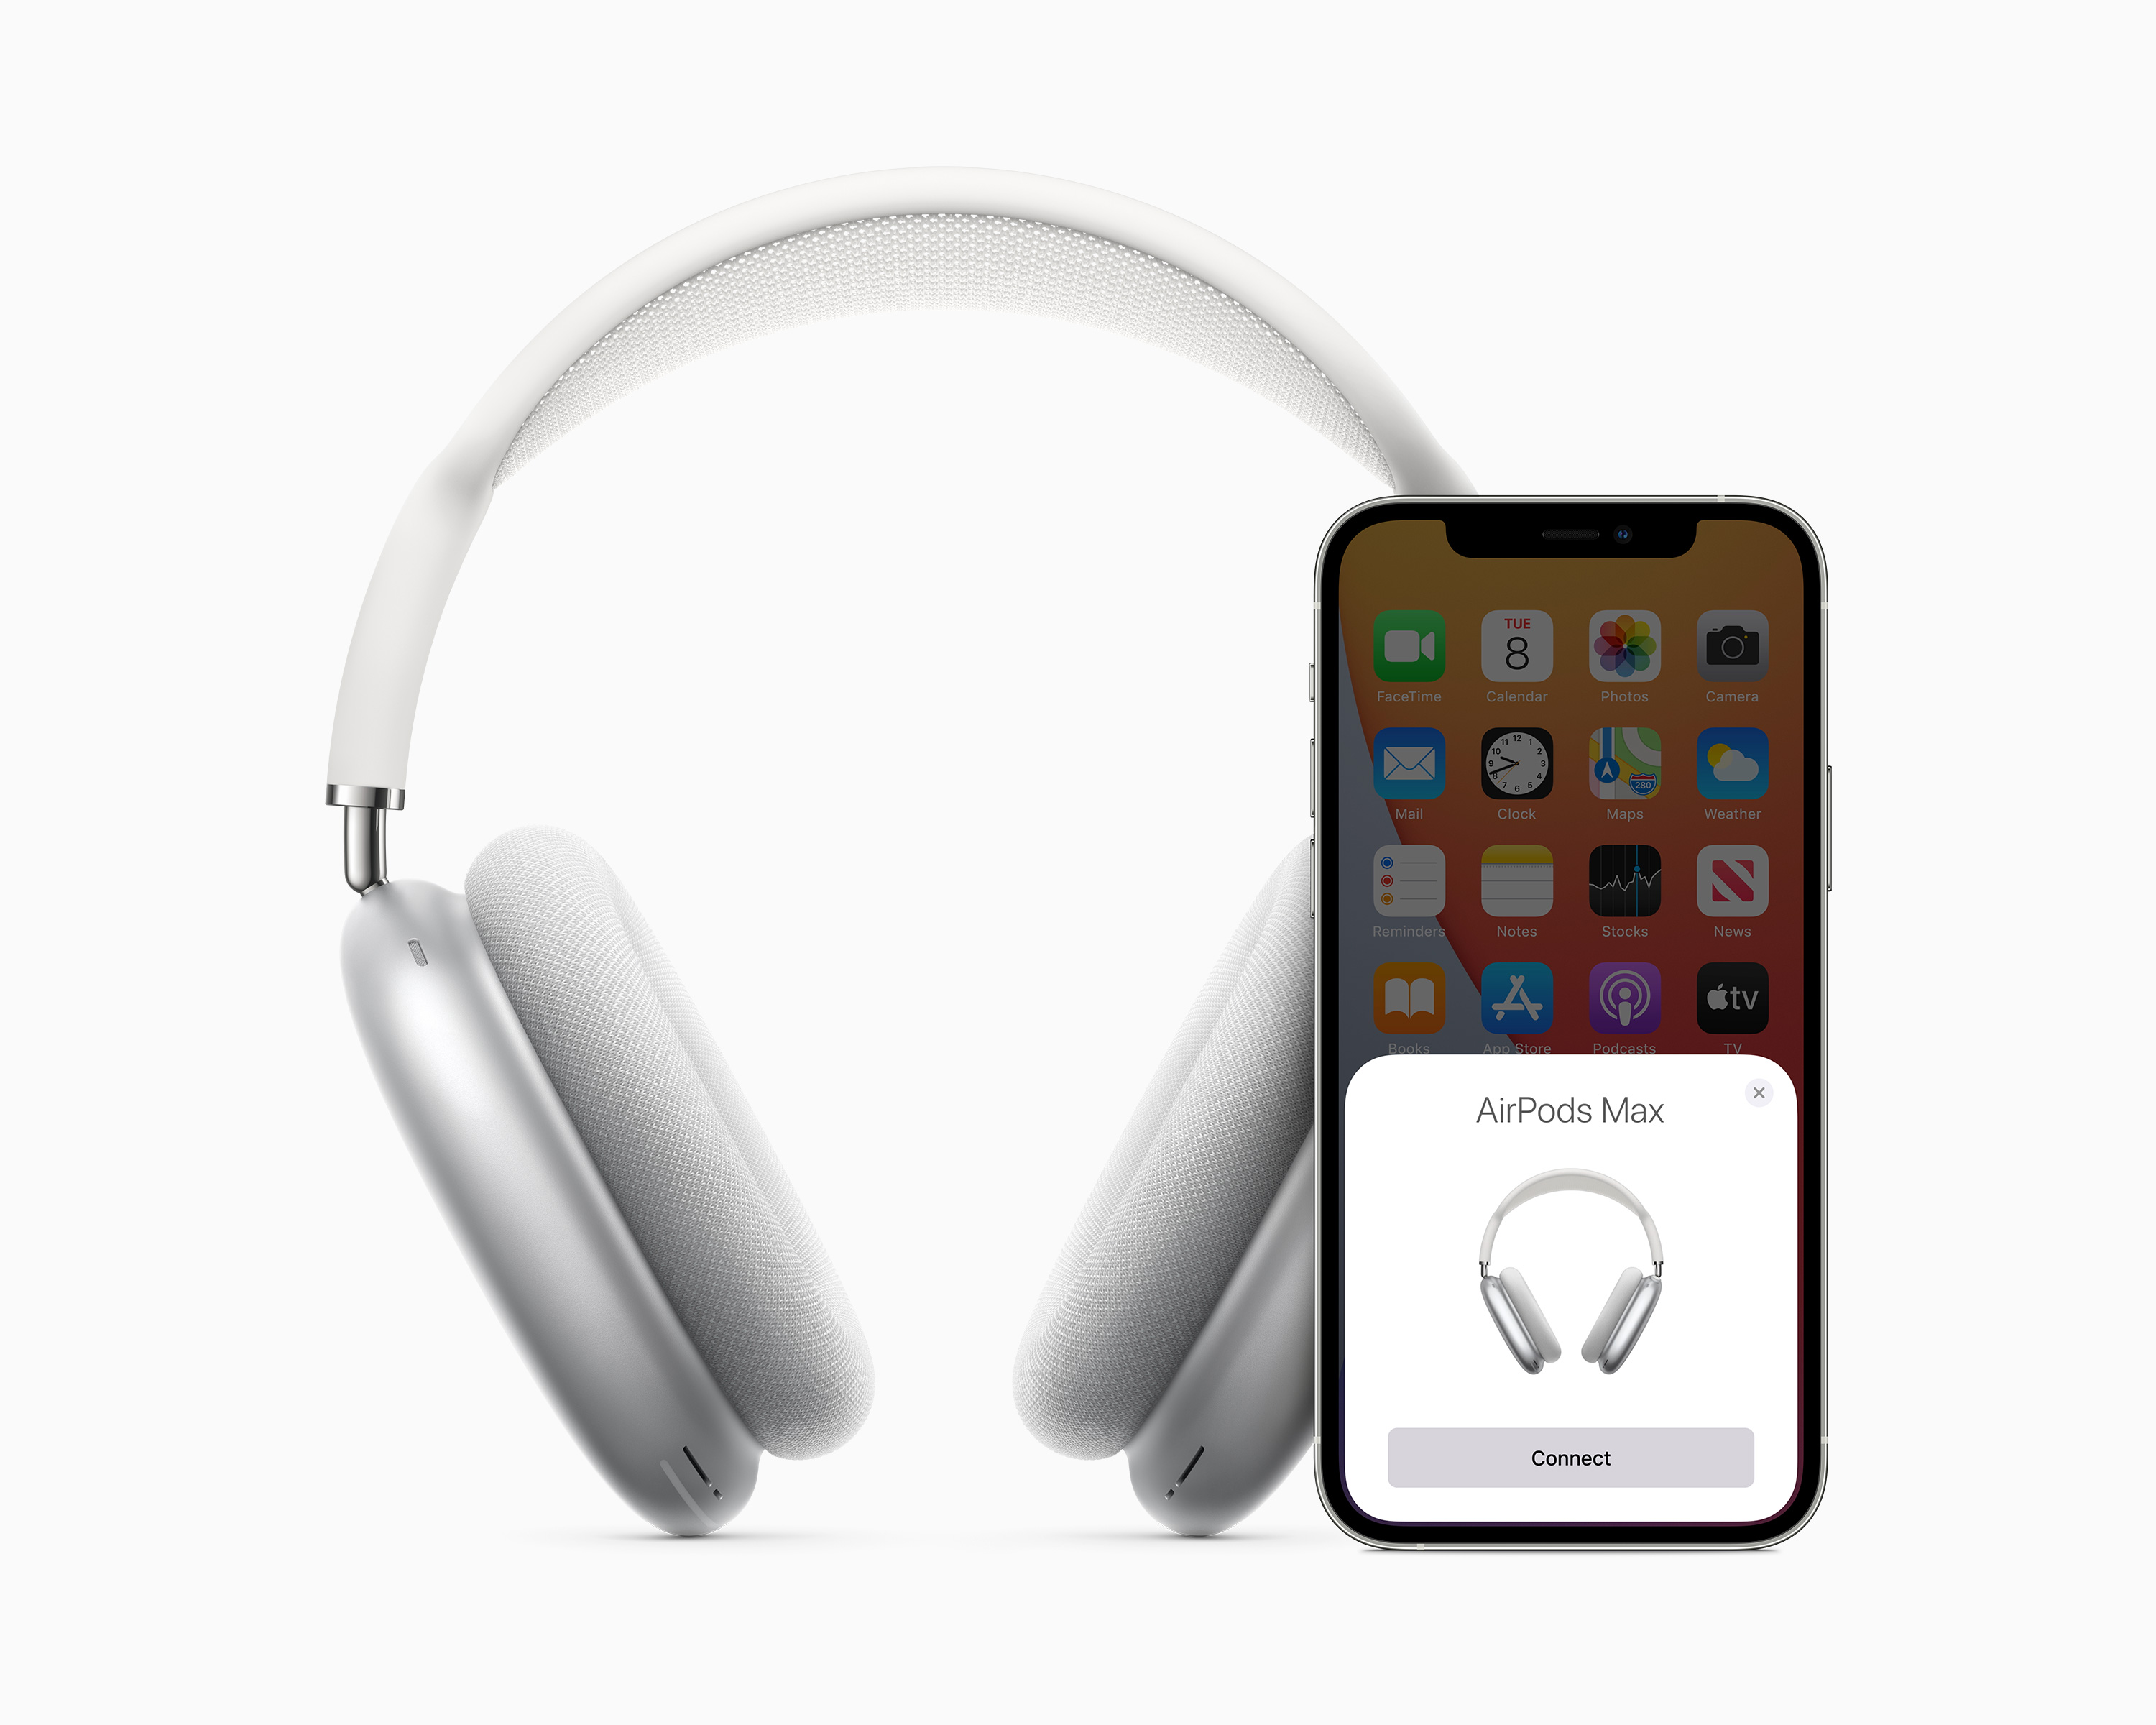 Apple's new $550 AirPods Max headphones won't arrive in time for the holiday season for many customers placing new orders with the company online, Bloomberg reported on Wednesday, Dec. 9, 2020.